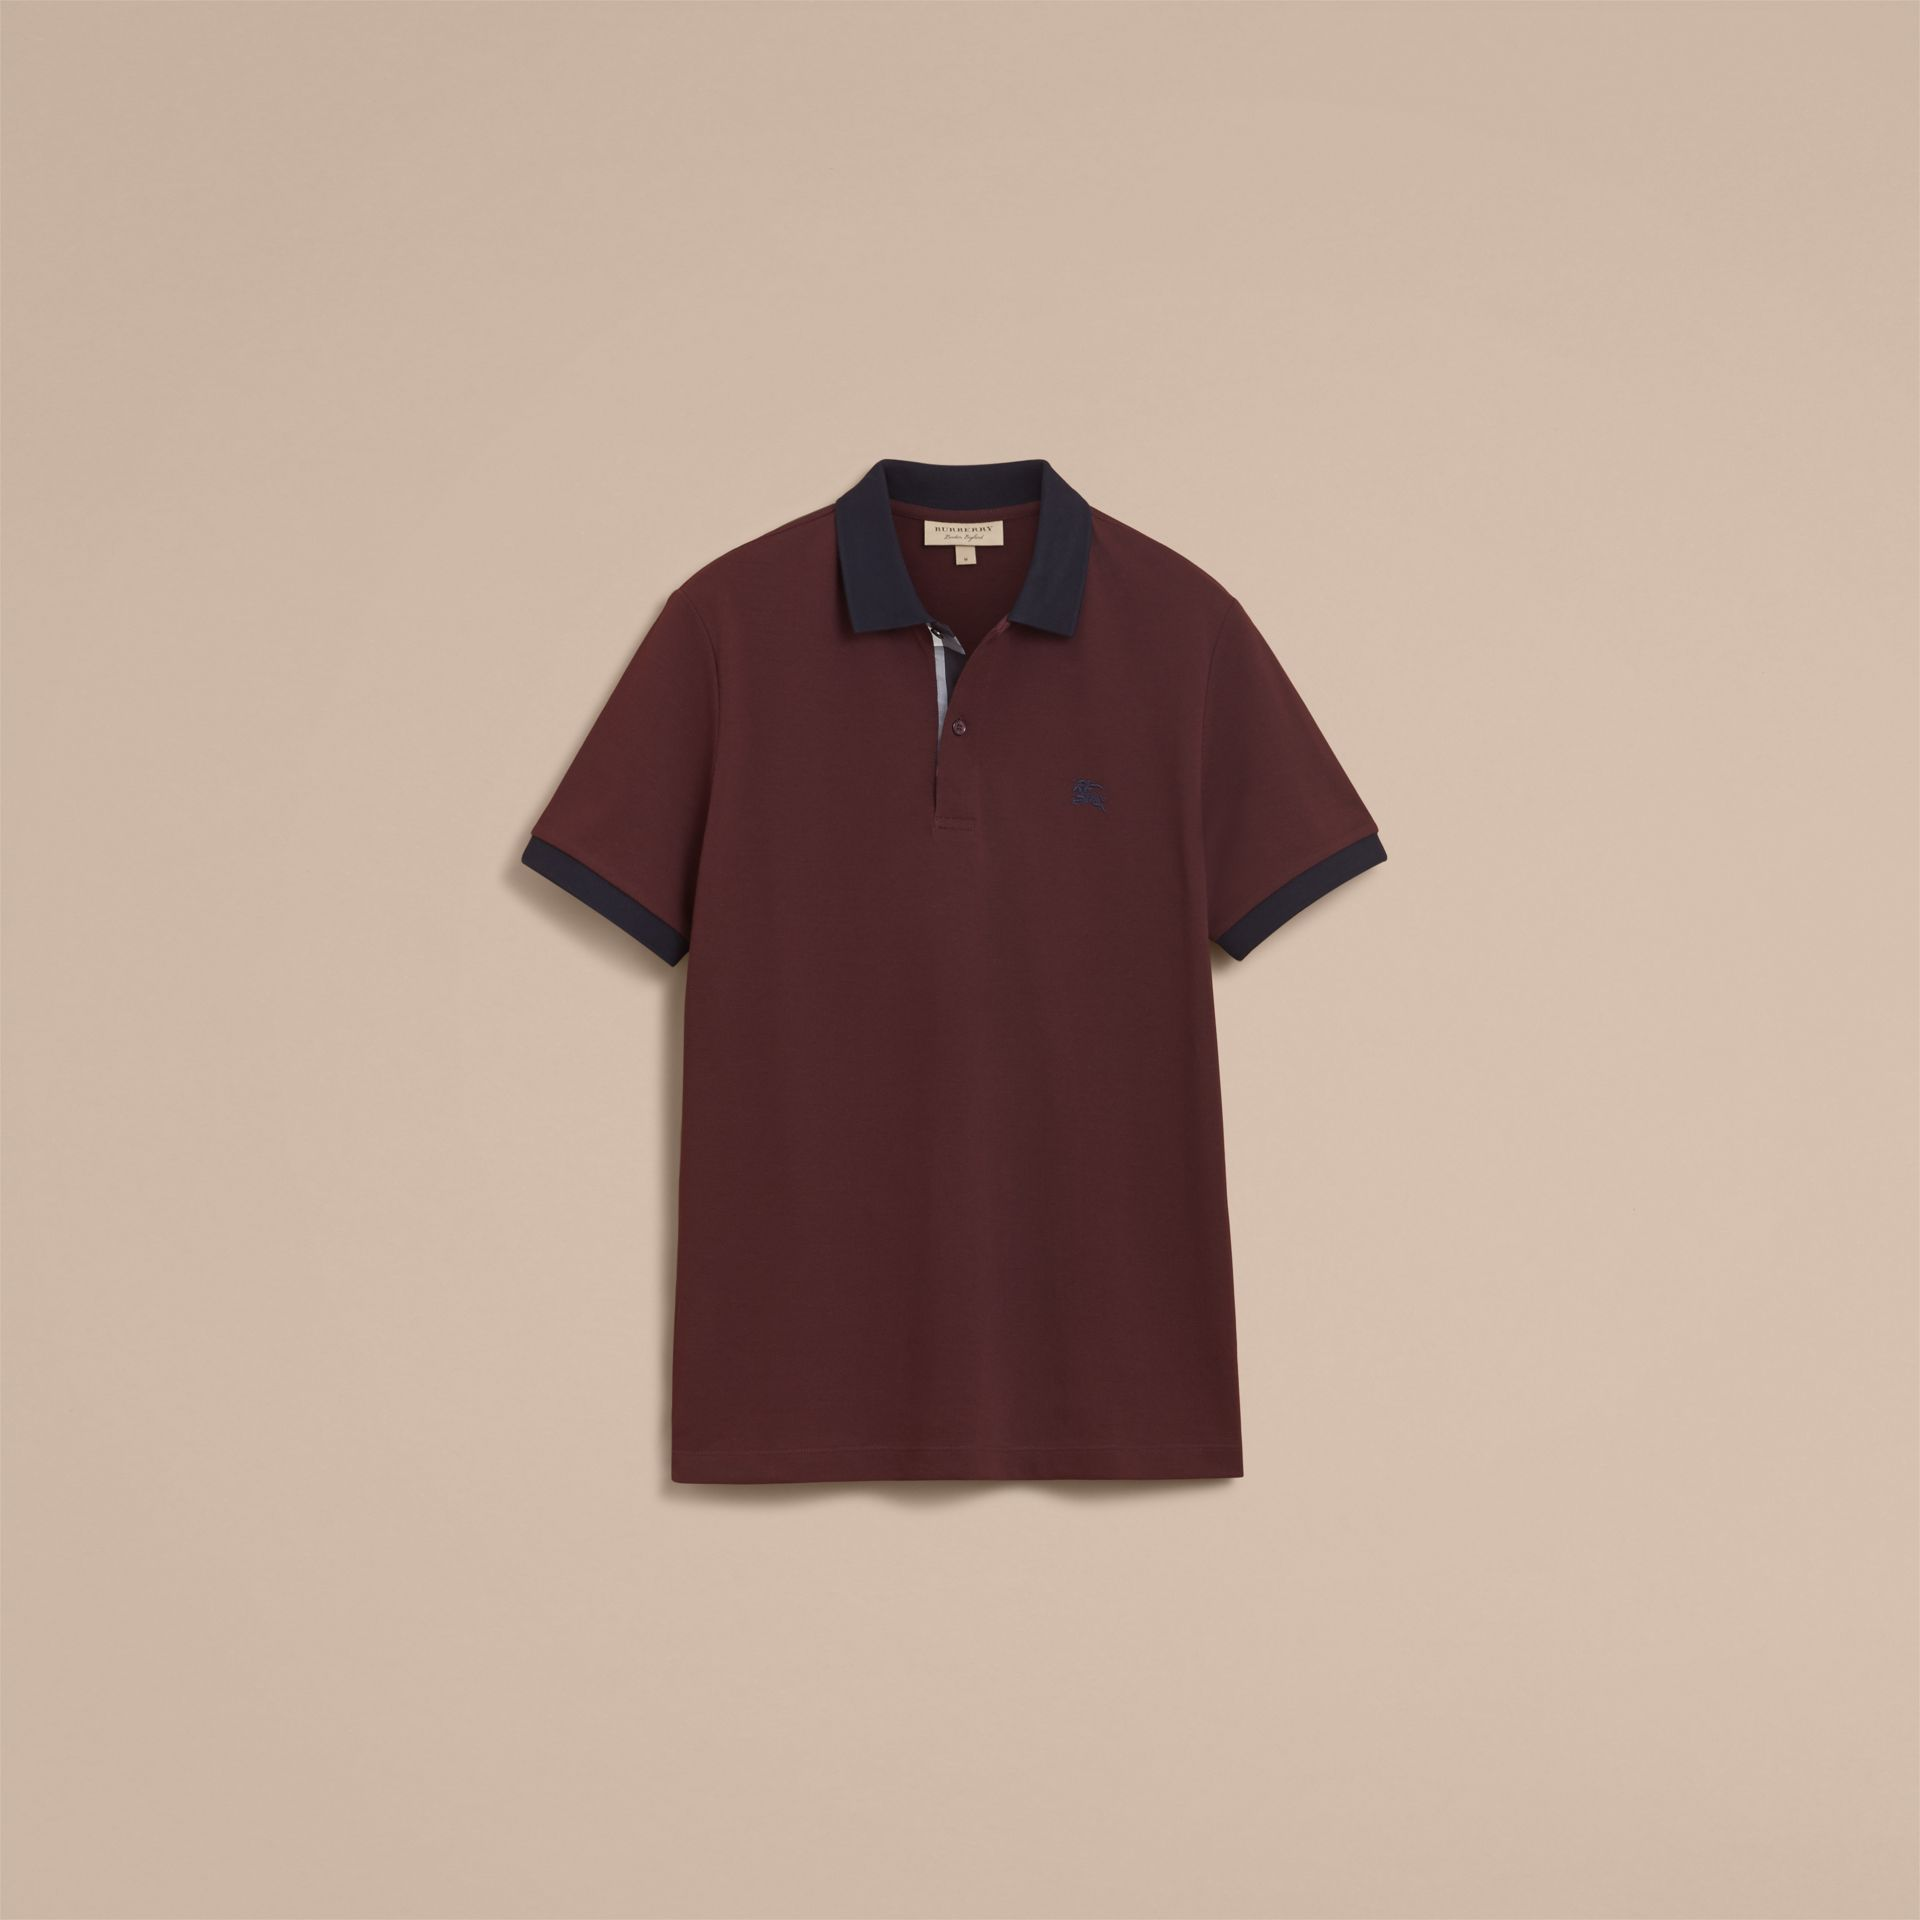 Polo bicolore en piqué de coton avec patte à motif check (Bordeaux Intense) - Homme | Burberry - photo de la galerie 4